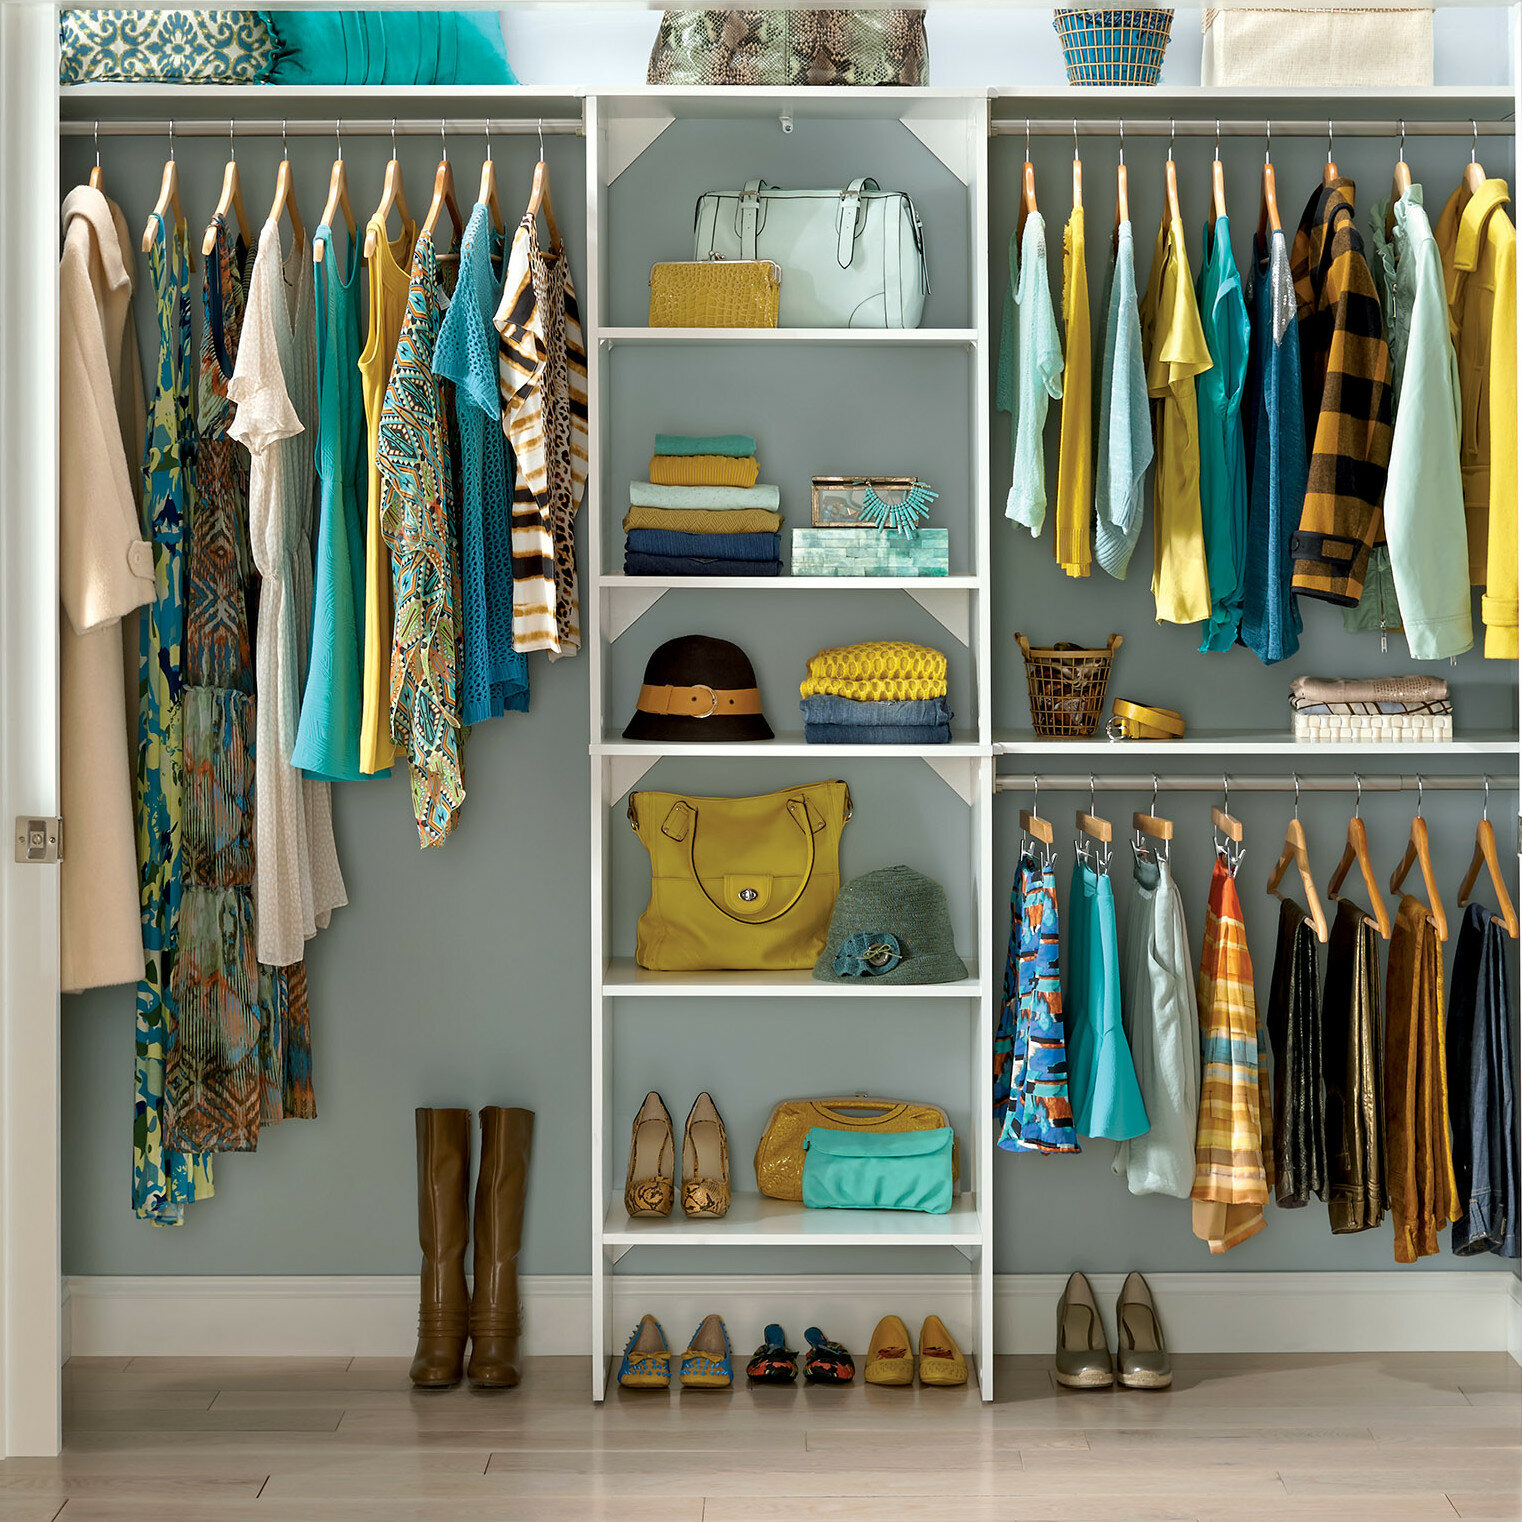 of closet mud shoe benches cedar for and mudroom lockers ideas full bedroom stor hooks shelf from furniture inch target portable living rack size shelves walmart storage hanging your organizing plastic file with sitting ikea unnamed organizers great white bench wooden room home foyer shoes benc